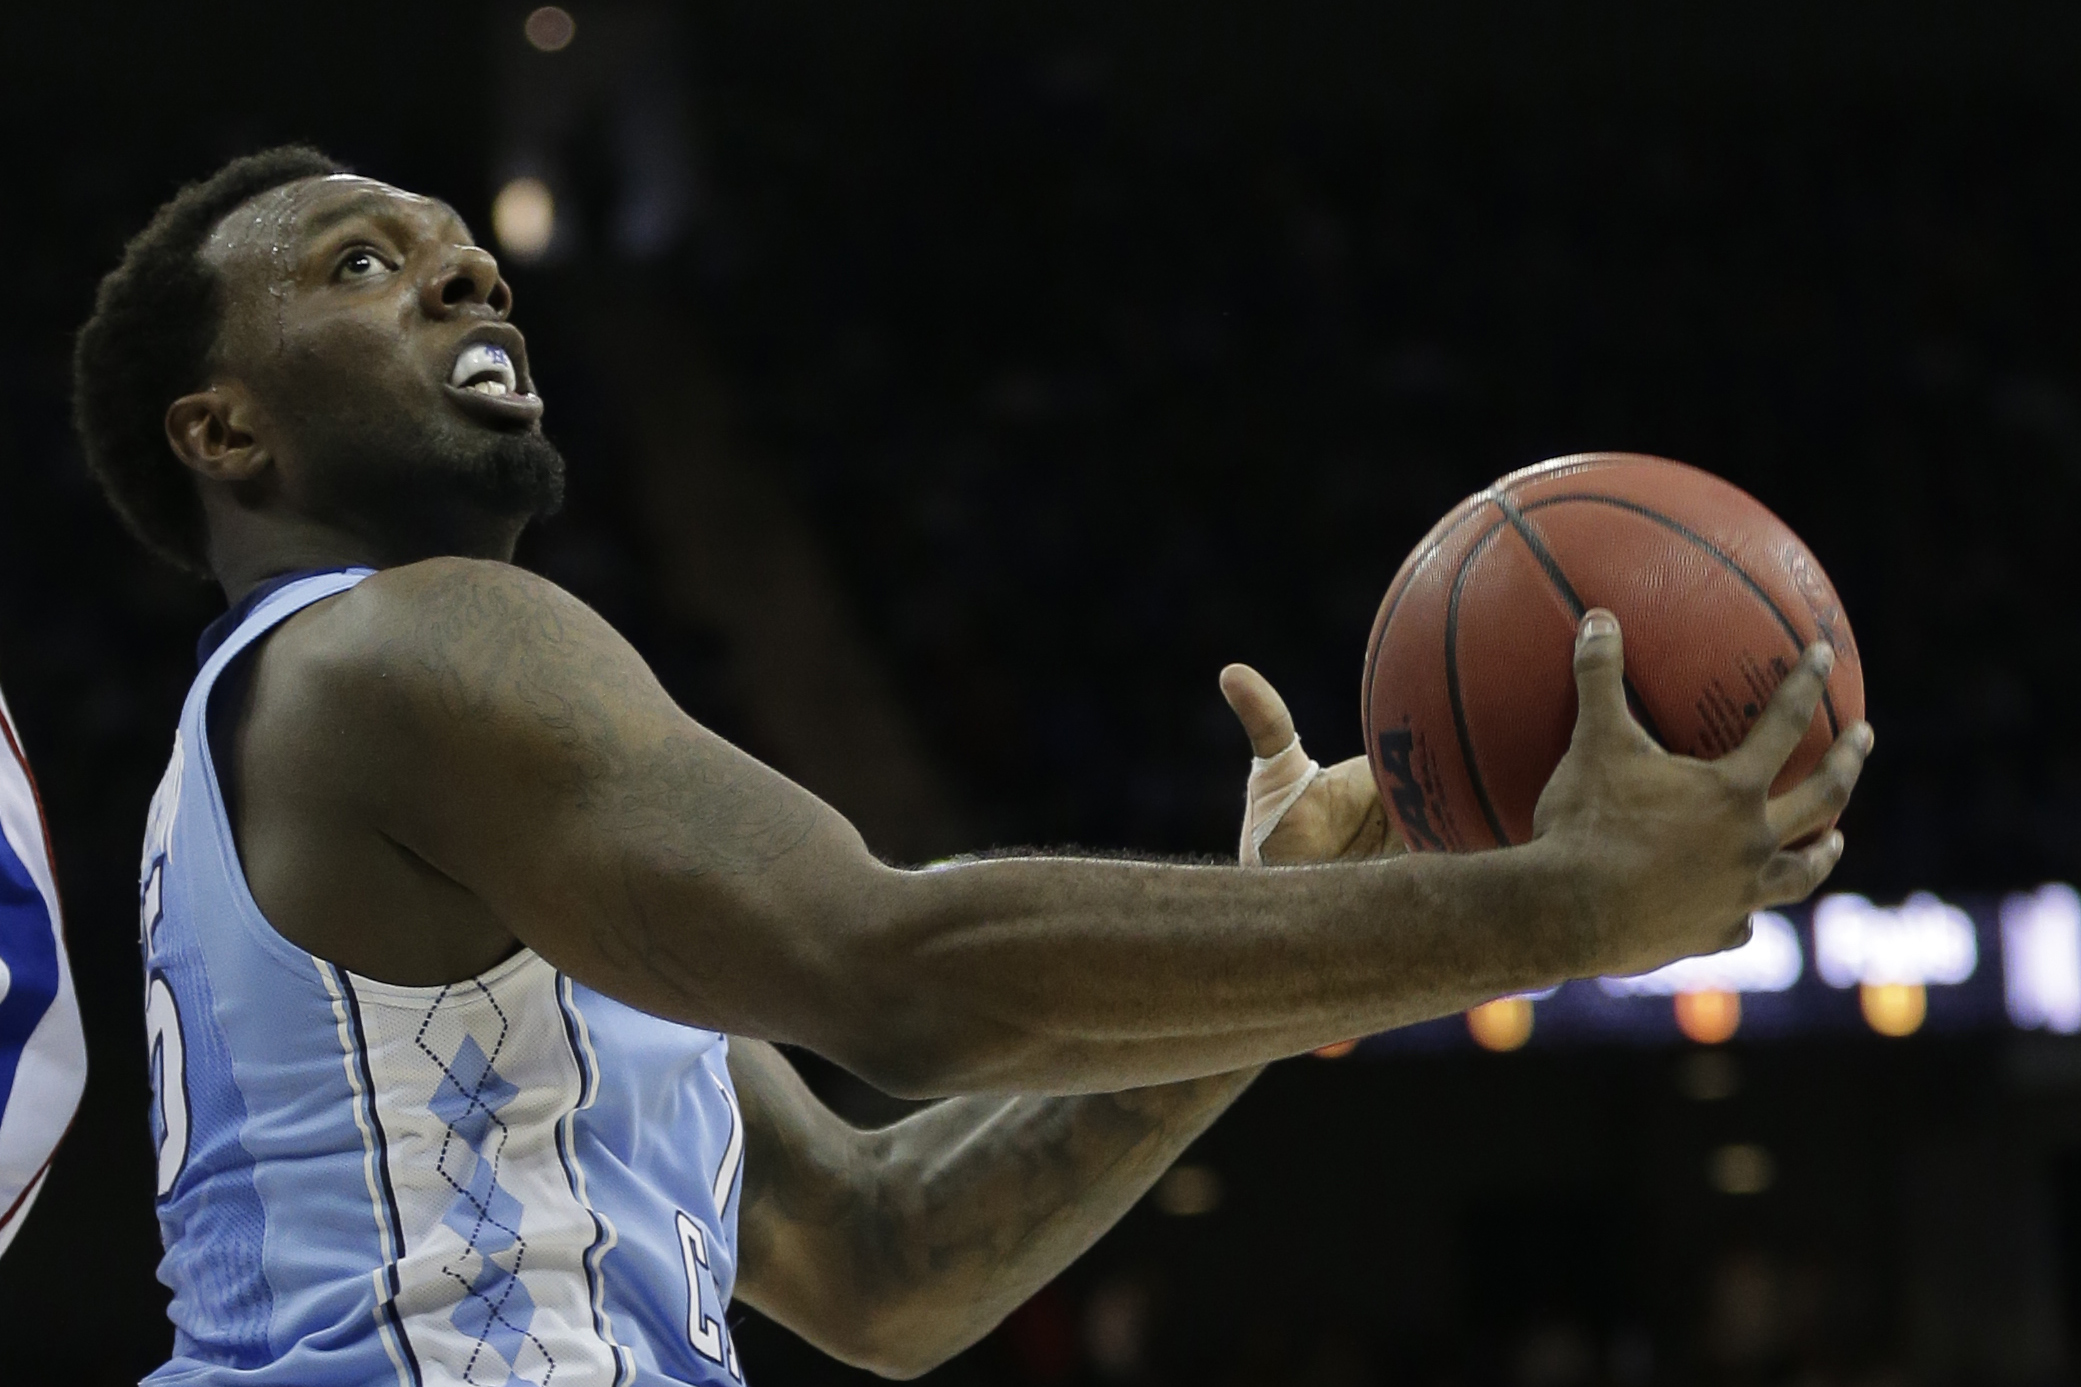 After two years at North Carolina, Hairston played for the Texas Legends in the NBA D-League and he scored in the top 30 in three events at the Draft Combine.